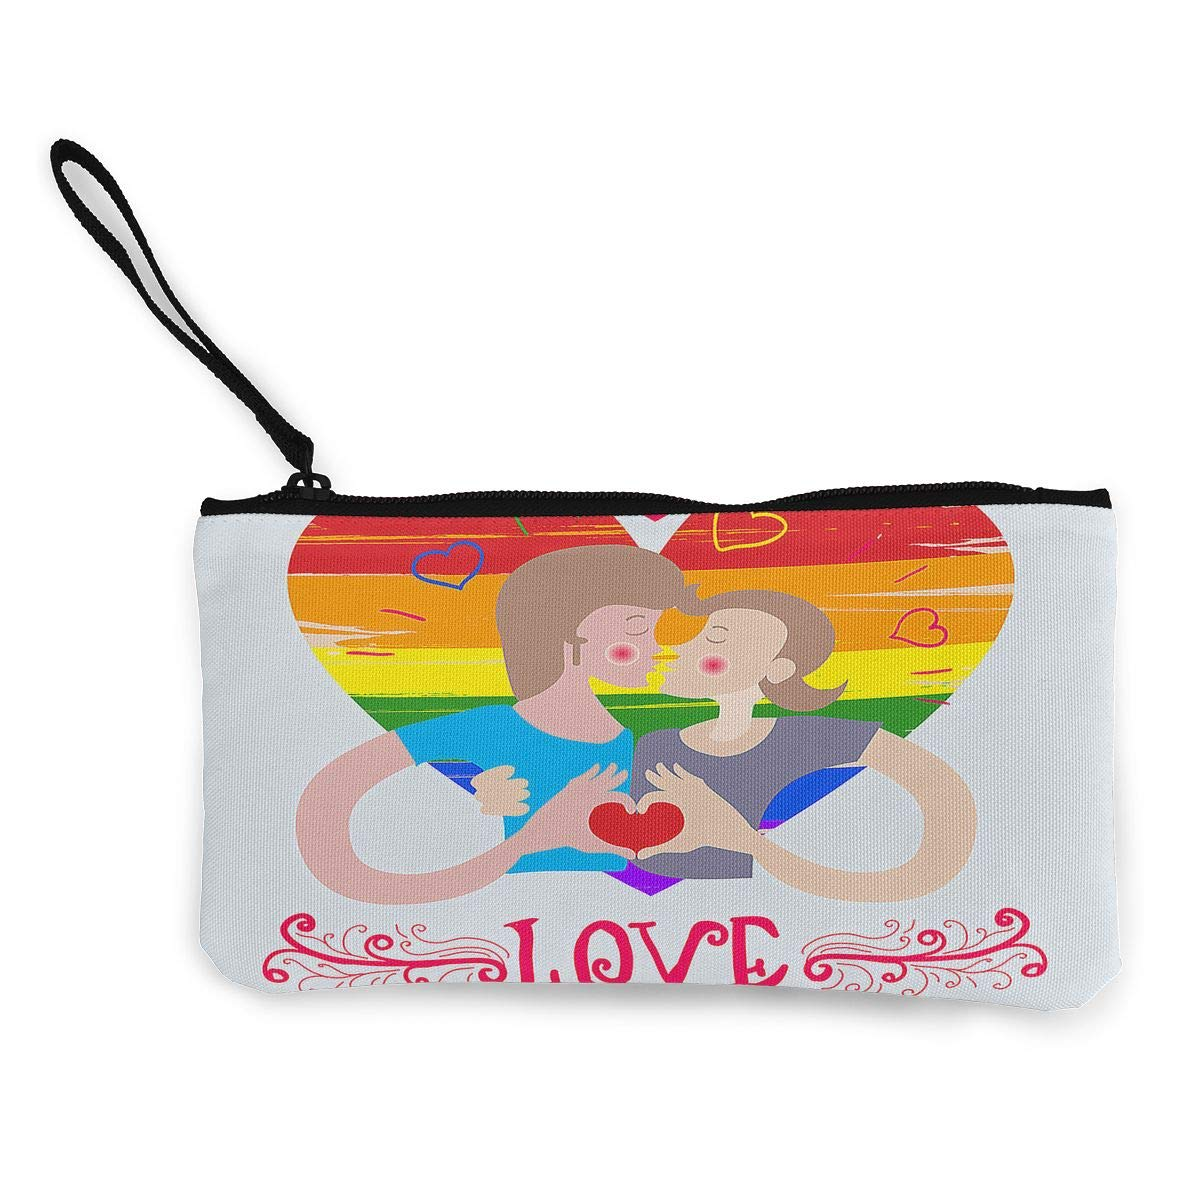 Maple Memories Valentines Day Gay Pride Portable Canvas Coin Purse Change Purse Pouch Mini Wallet Gifts For Women Girls